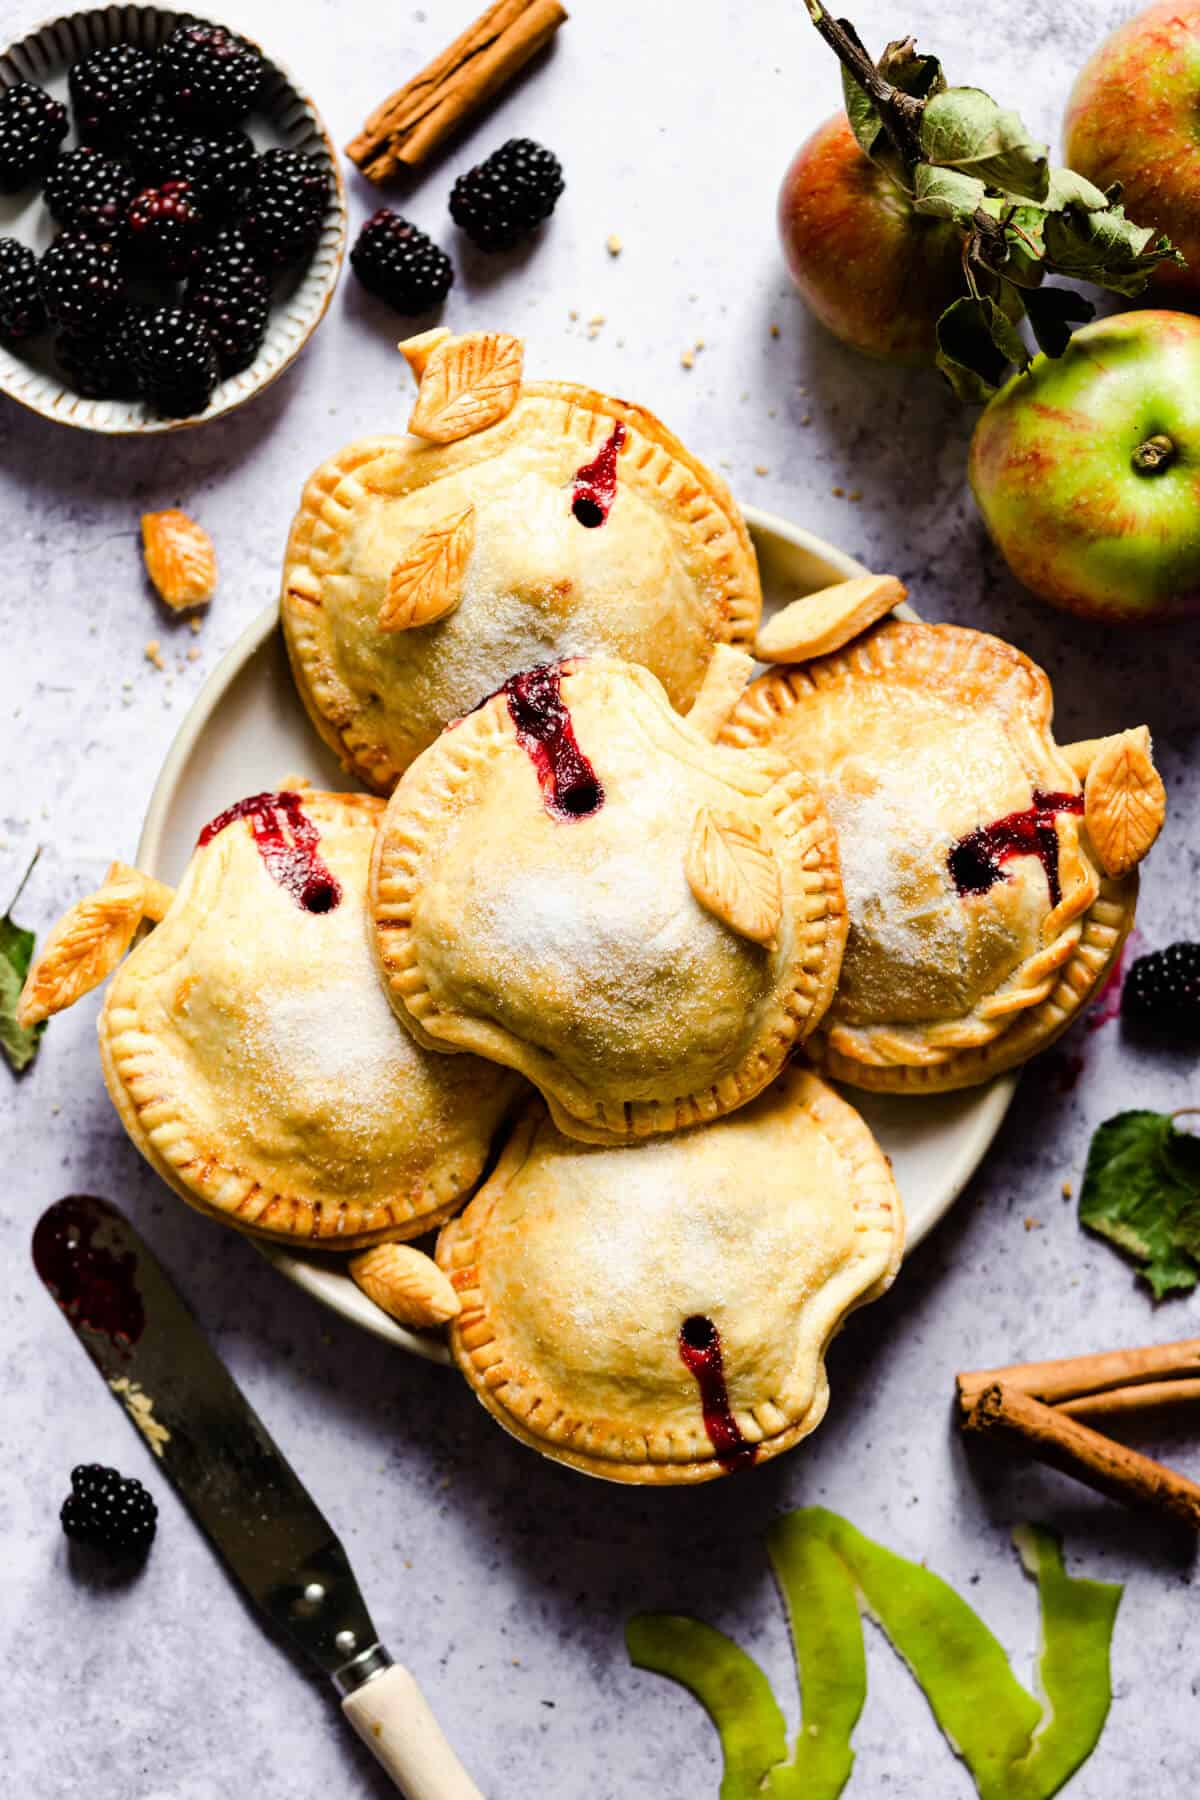 top view of a plate with 5 apple and blackberry hand pies